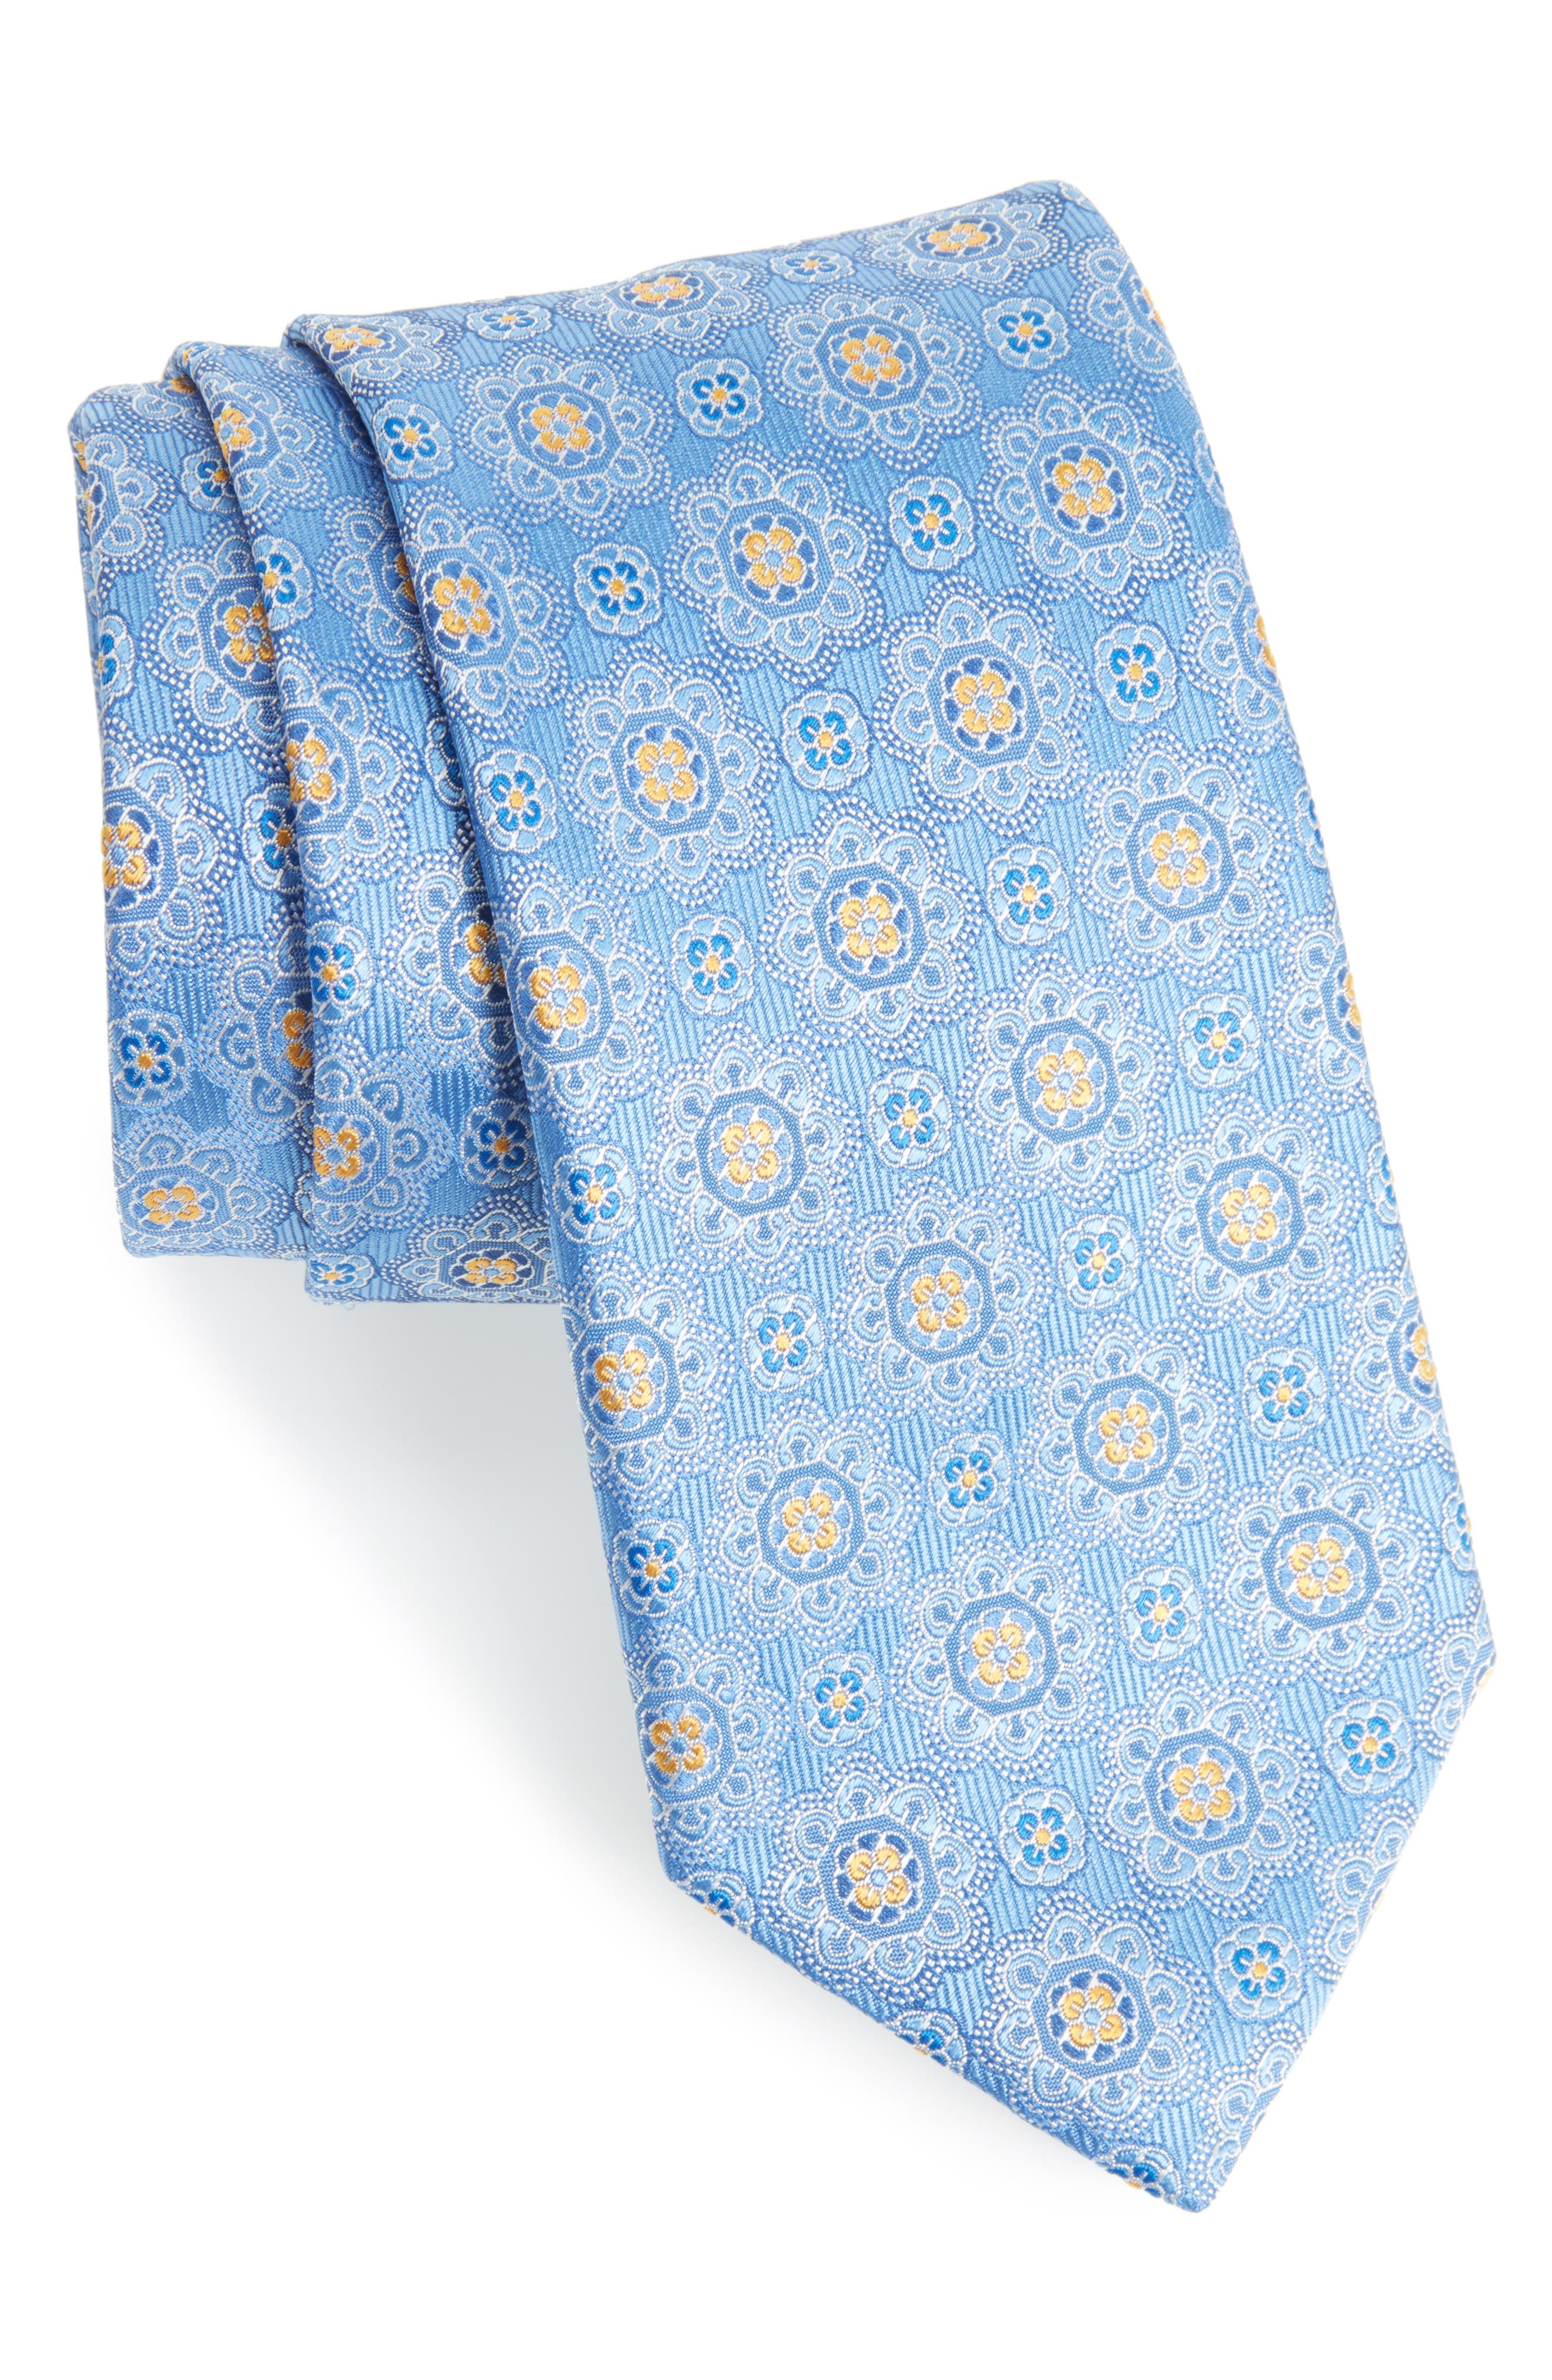 Medallion Silk Tie,                         Main,                         color, Yellow/ Blue